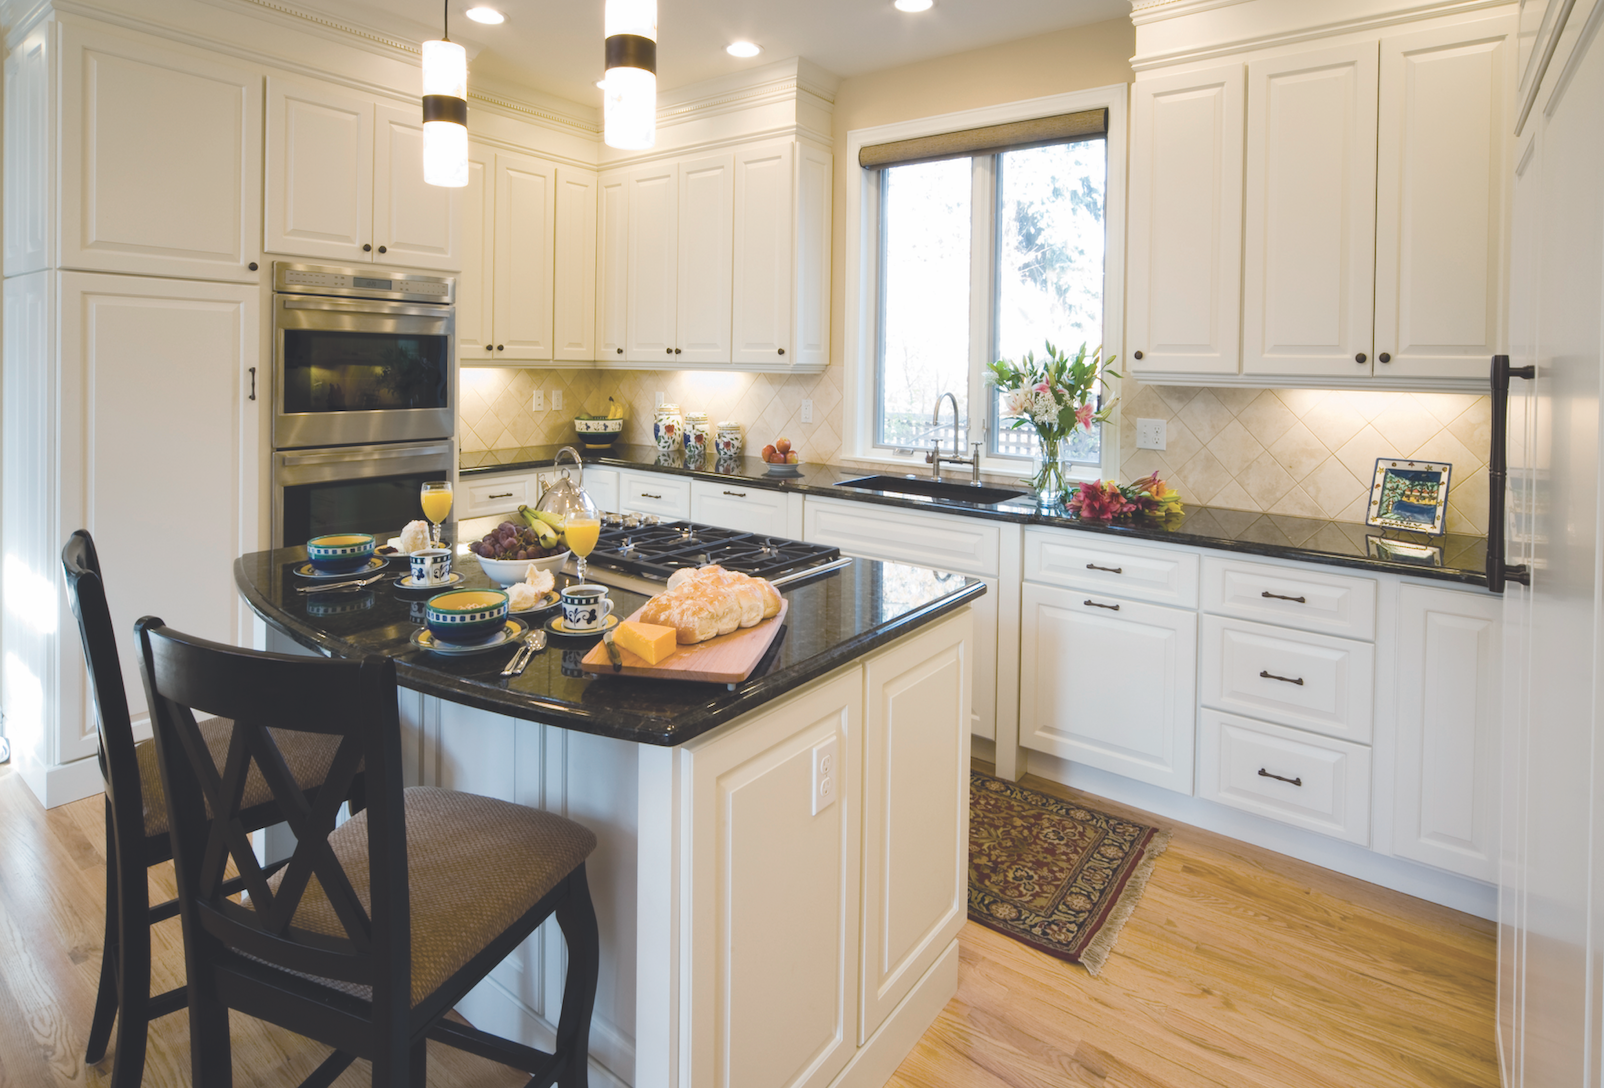 Undercabinet Lighting Dos & Don'ts